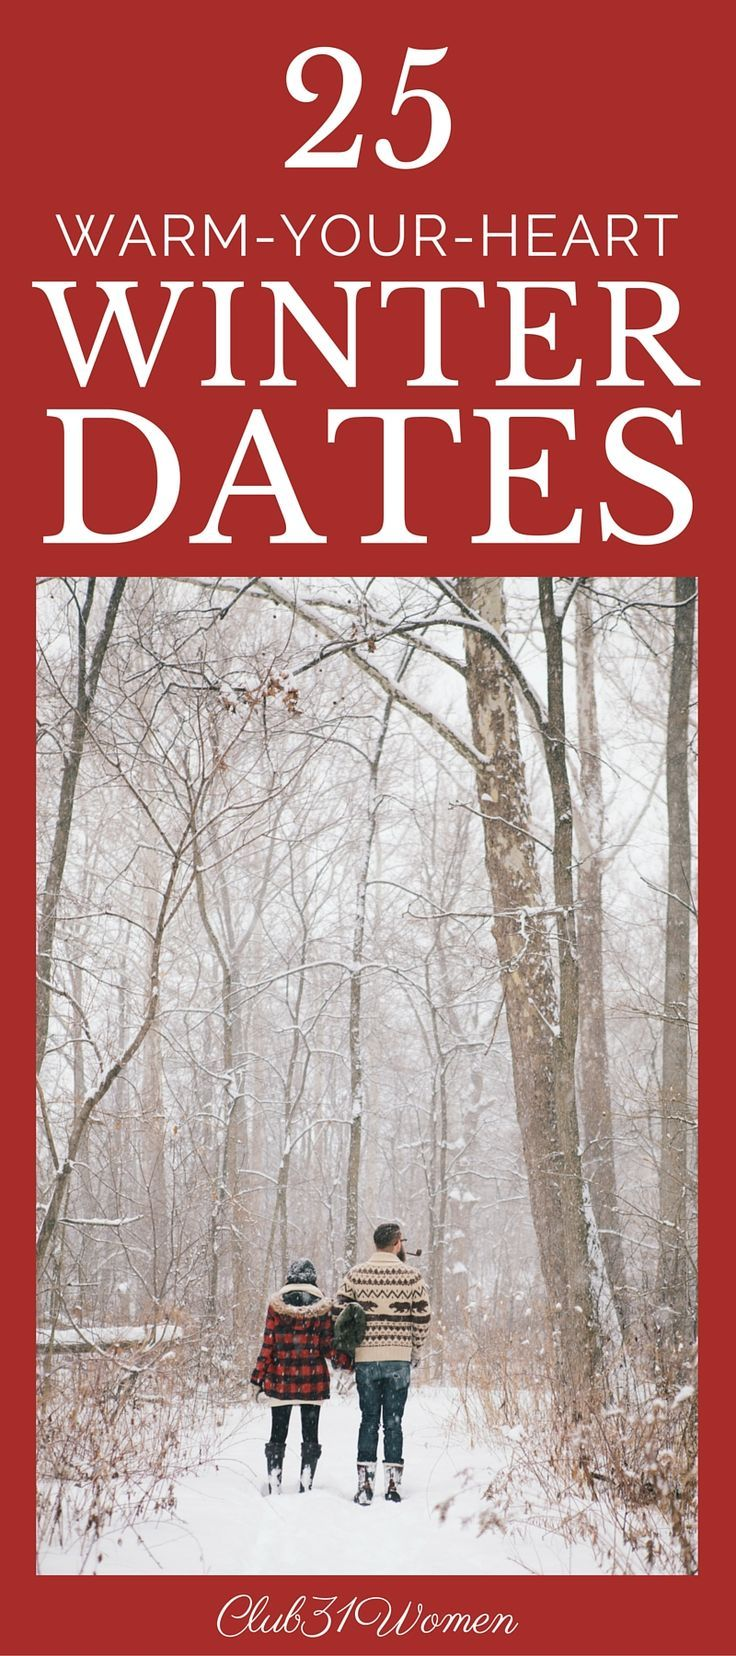 50 Winter Date Ideas! SO MANY great ideas for fun winter dates ...